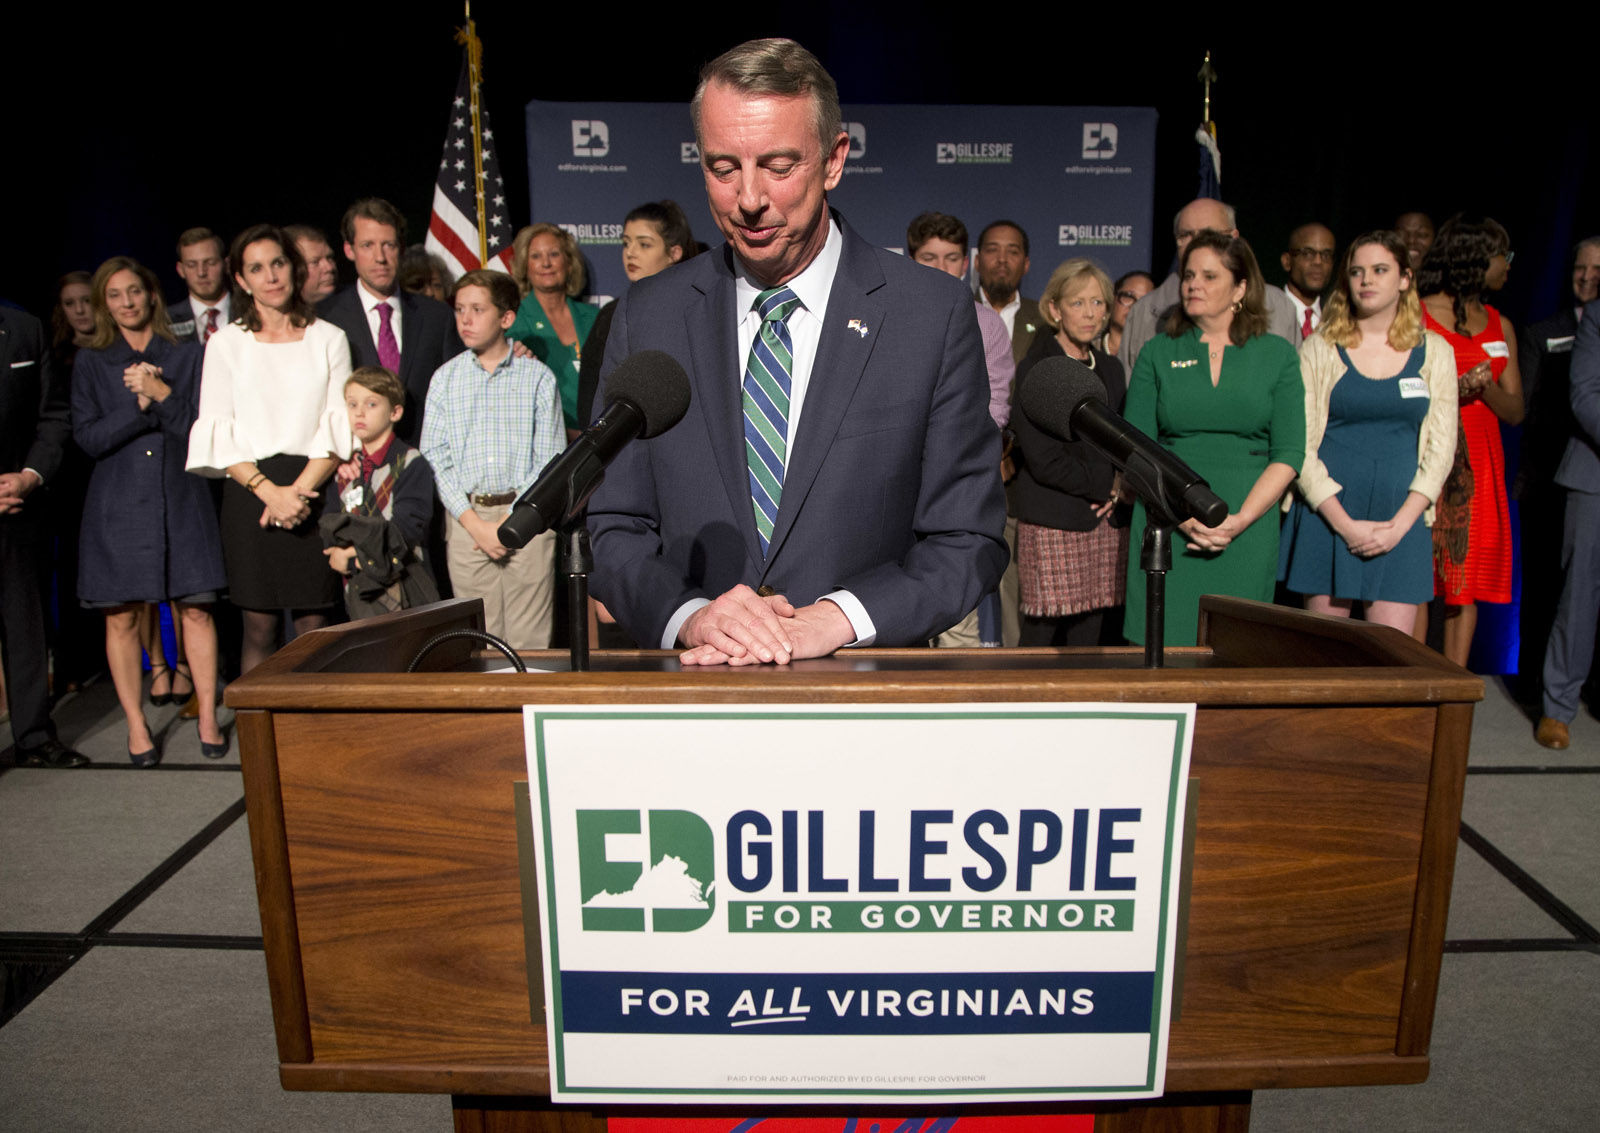 Republican gubernatorial candidate Ed Gillespie pauses as he delivers a concession speech during an election party in Richmond, Va., Tuesday, Nov. 7, 2017. Gillespie lost to Democrat Ralph Northam. (AP Photo/Steve Helber)